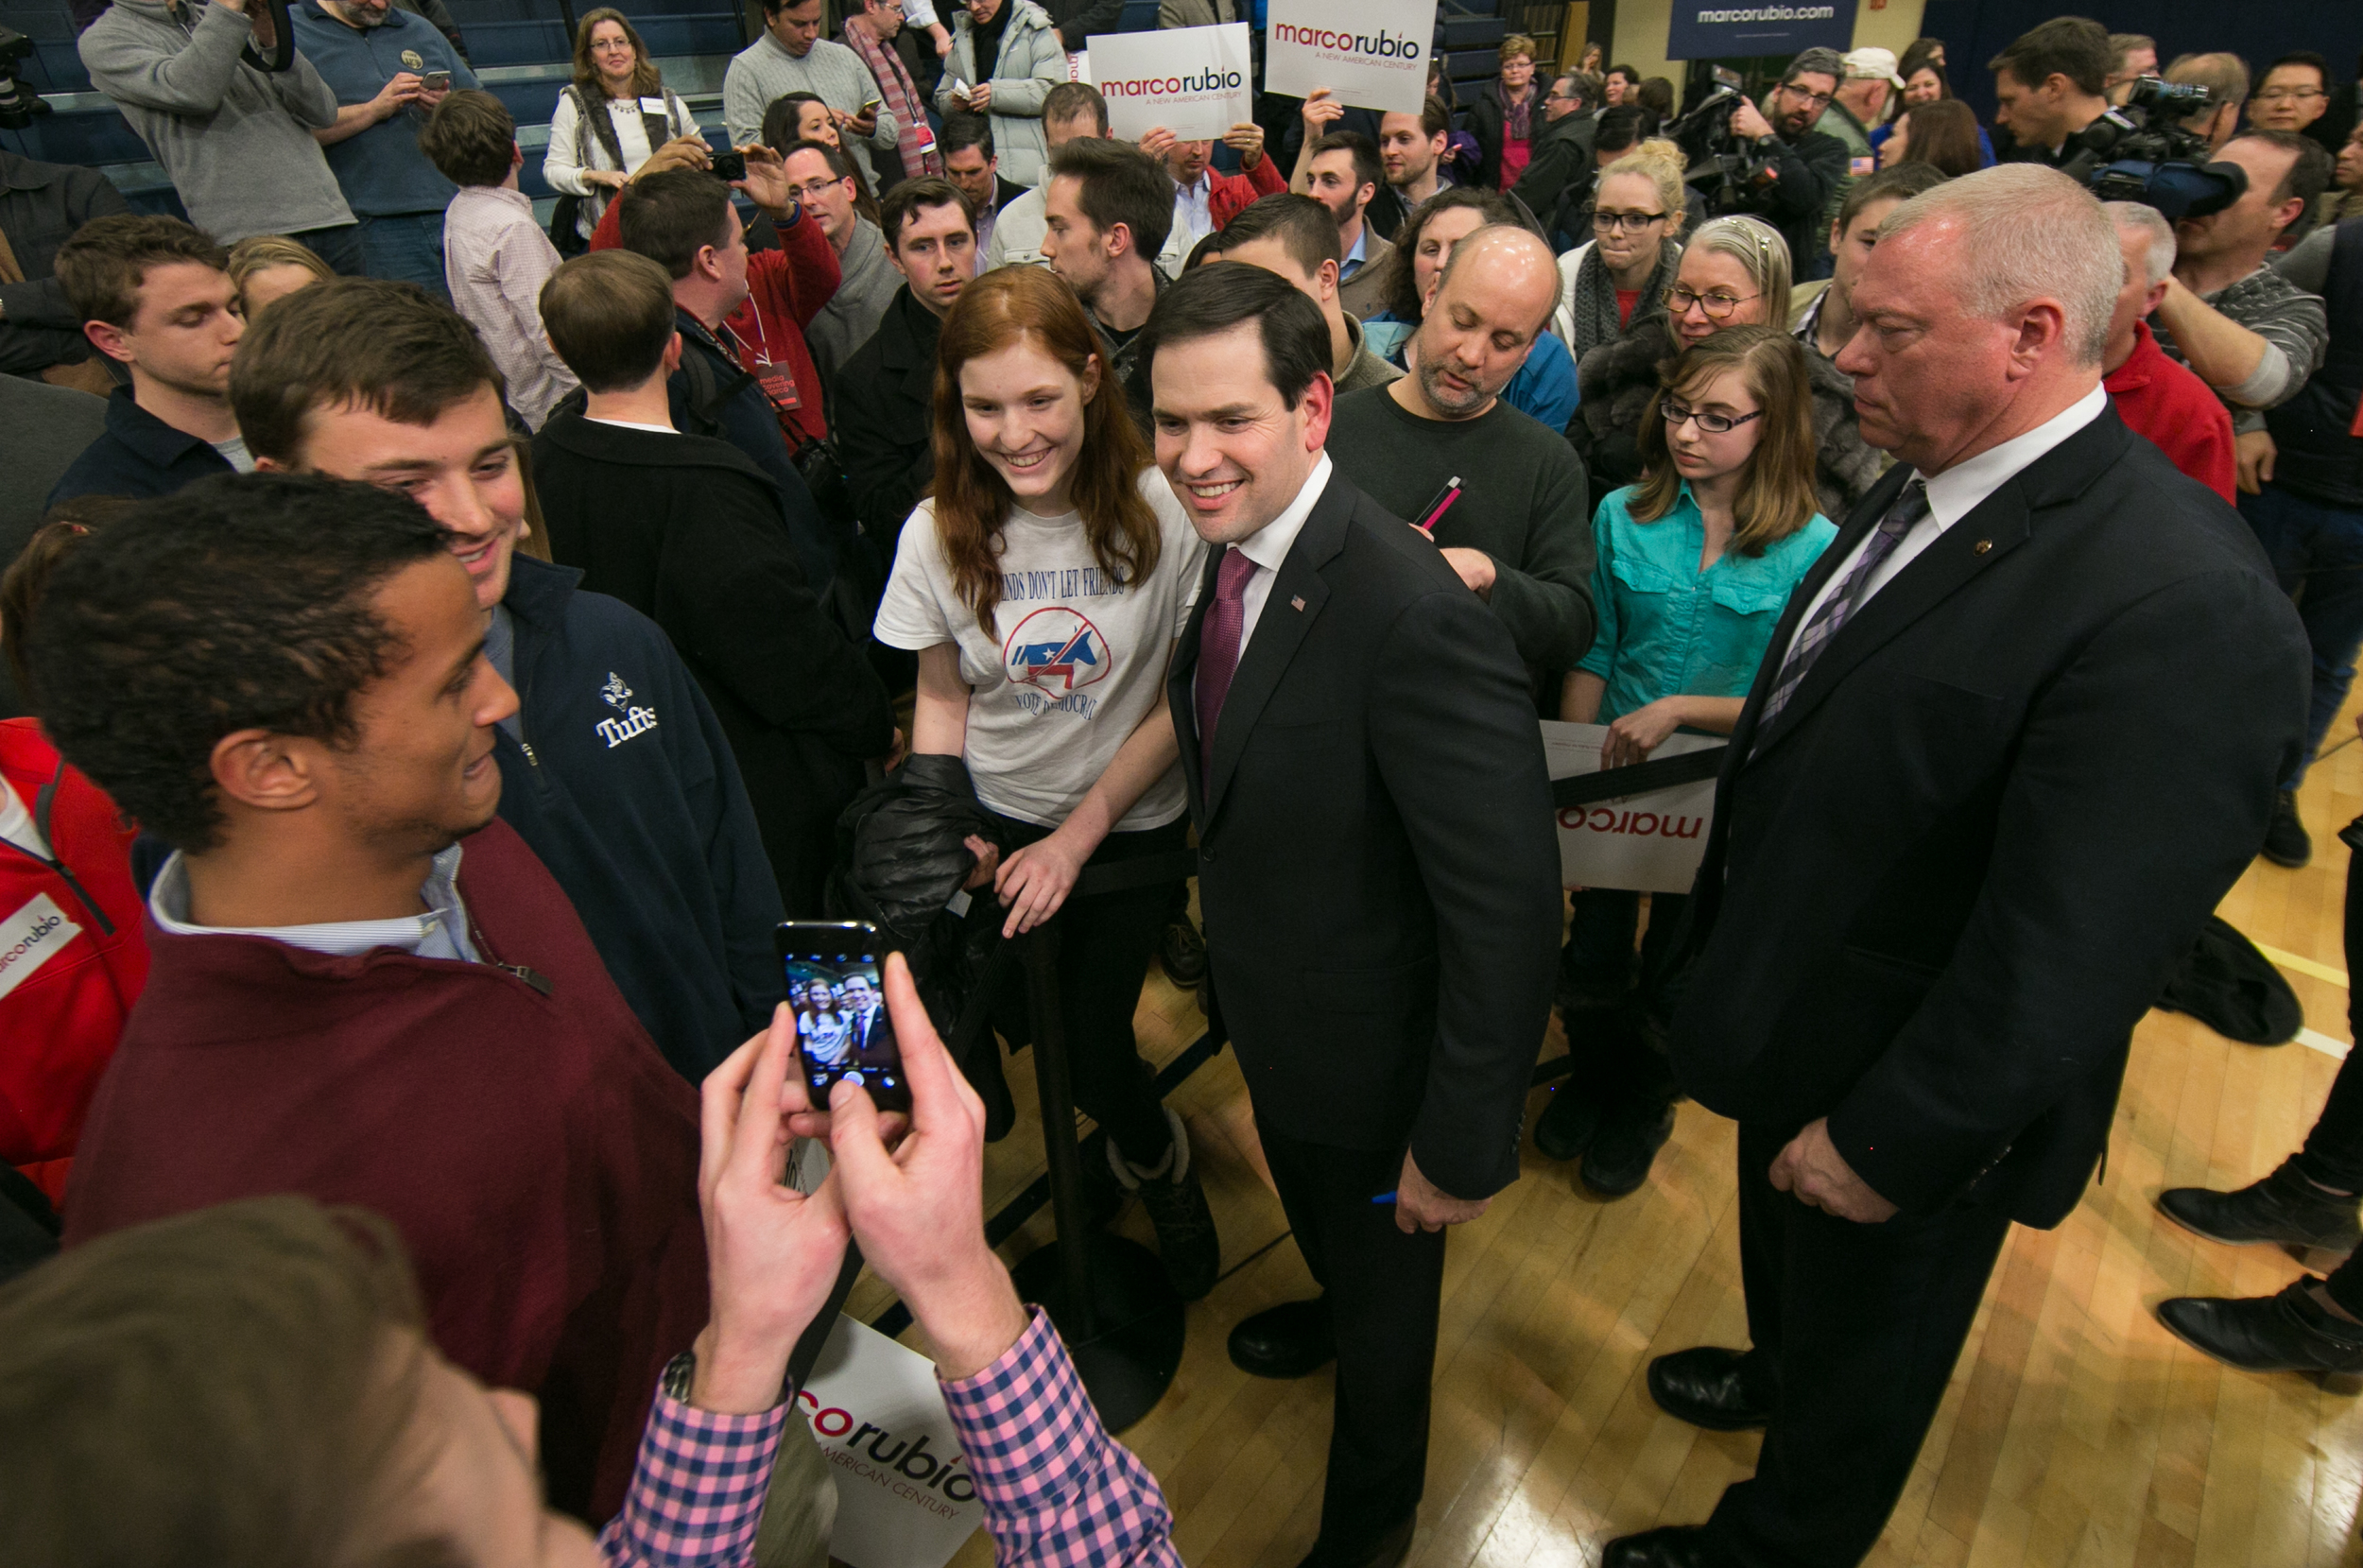 """February 8, 2016: Senator Marco Rubio, a republican candidate in the United States presidential primary, poses for a photo with Emily Carlson, 15, of Manchester NH, after giving a speech during a political rally at 505 Amherst St., in Nashua, New Hampshire. Carlson was also eager to have Rubio sign the back of her shirt, which plainly says, """"Friends Don't Let Friends Vote Democrat"""" across the front.  ©  Mike Schwarz"""